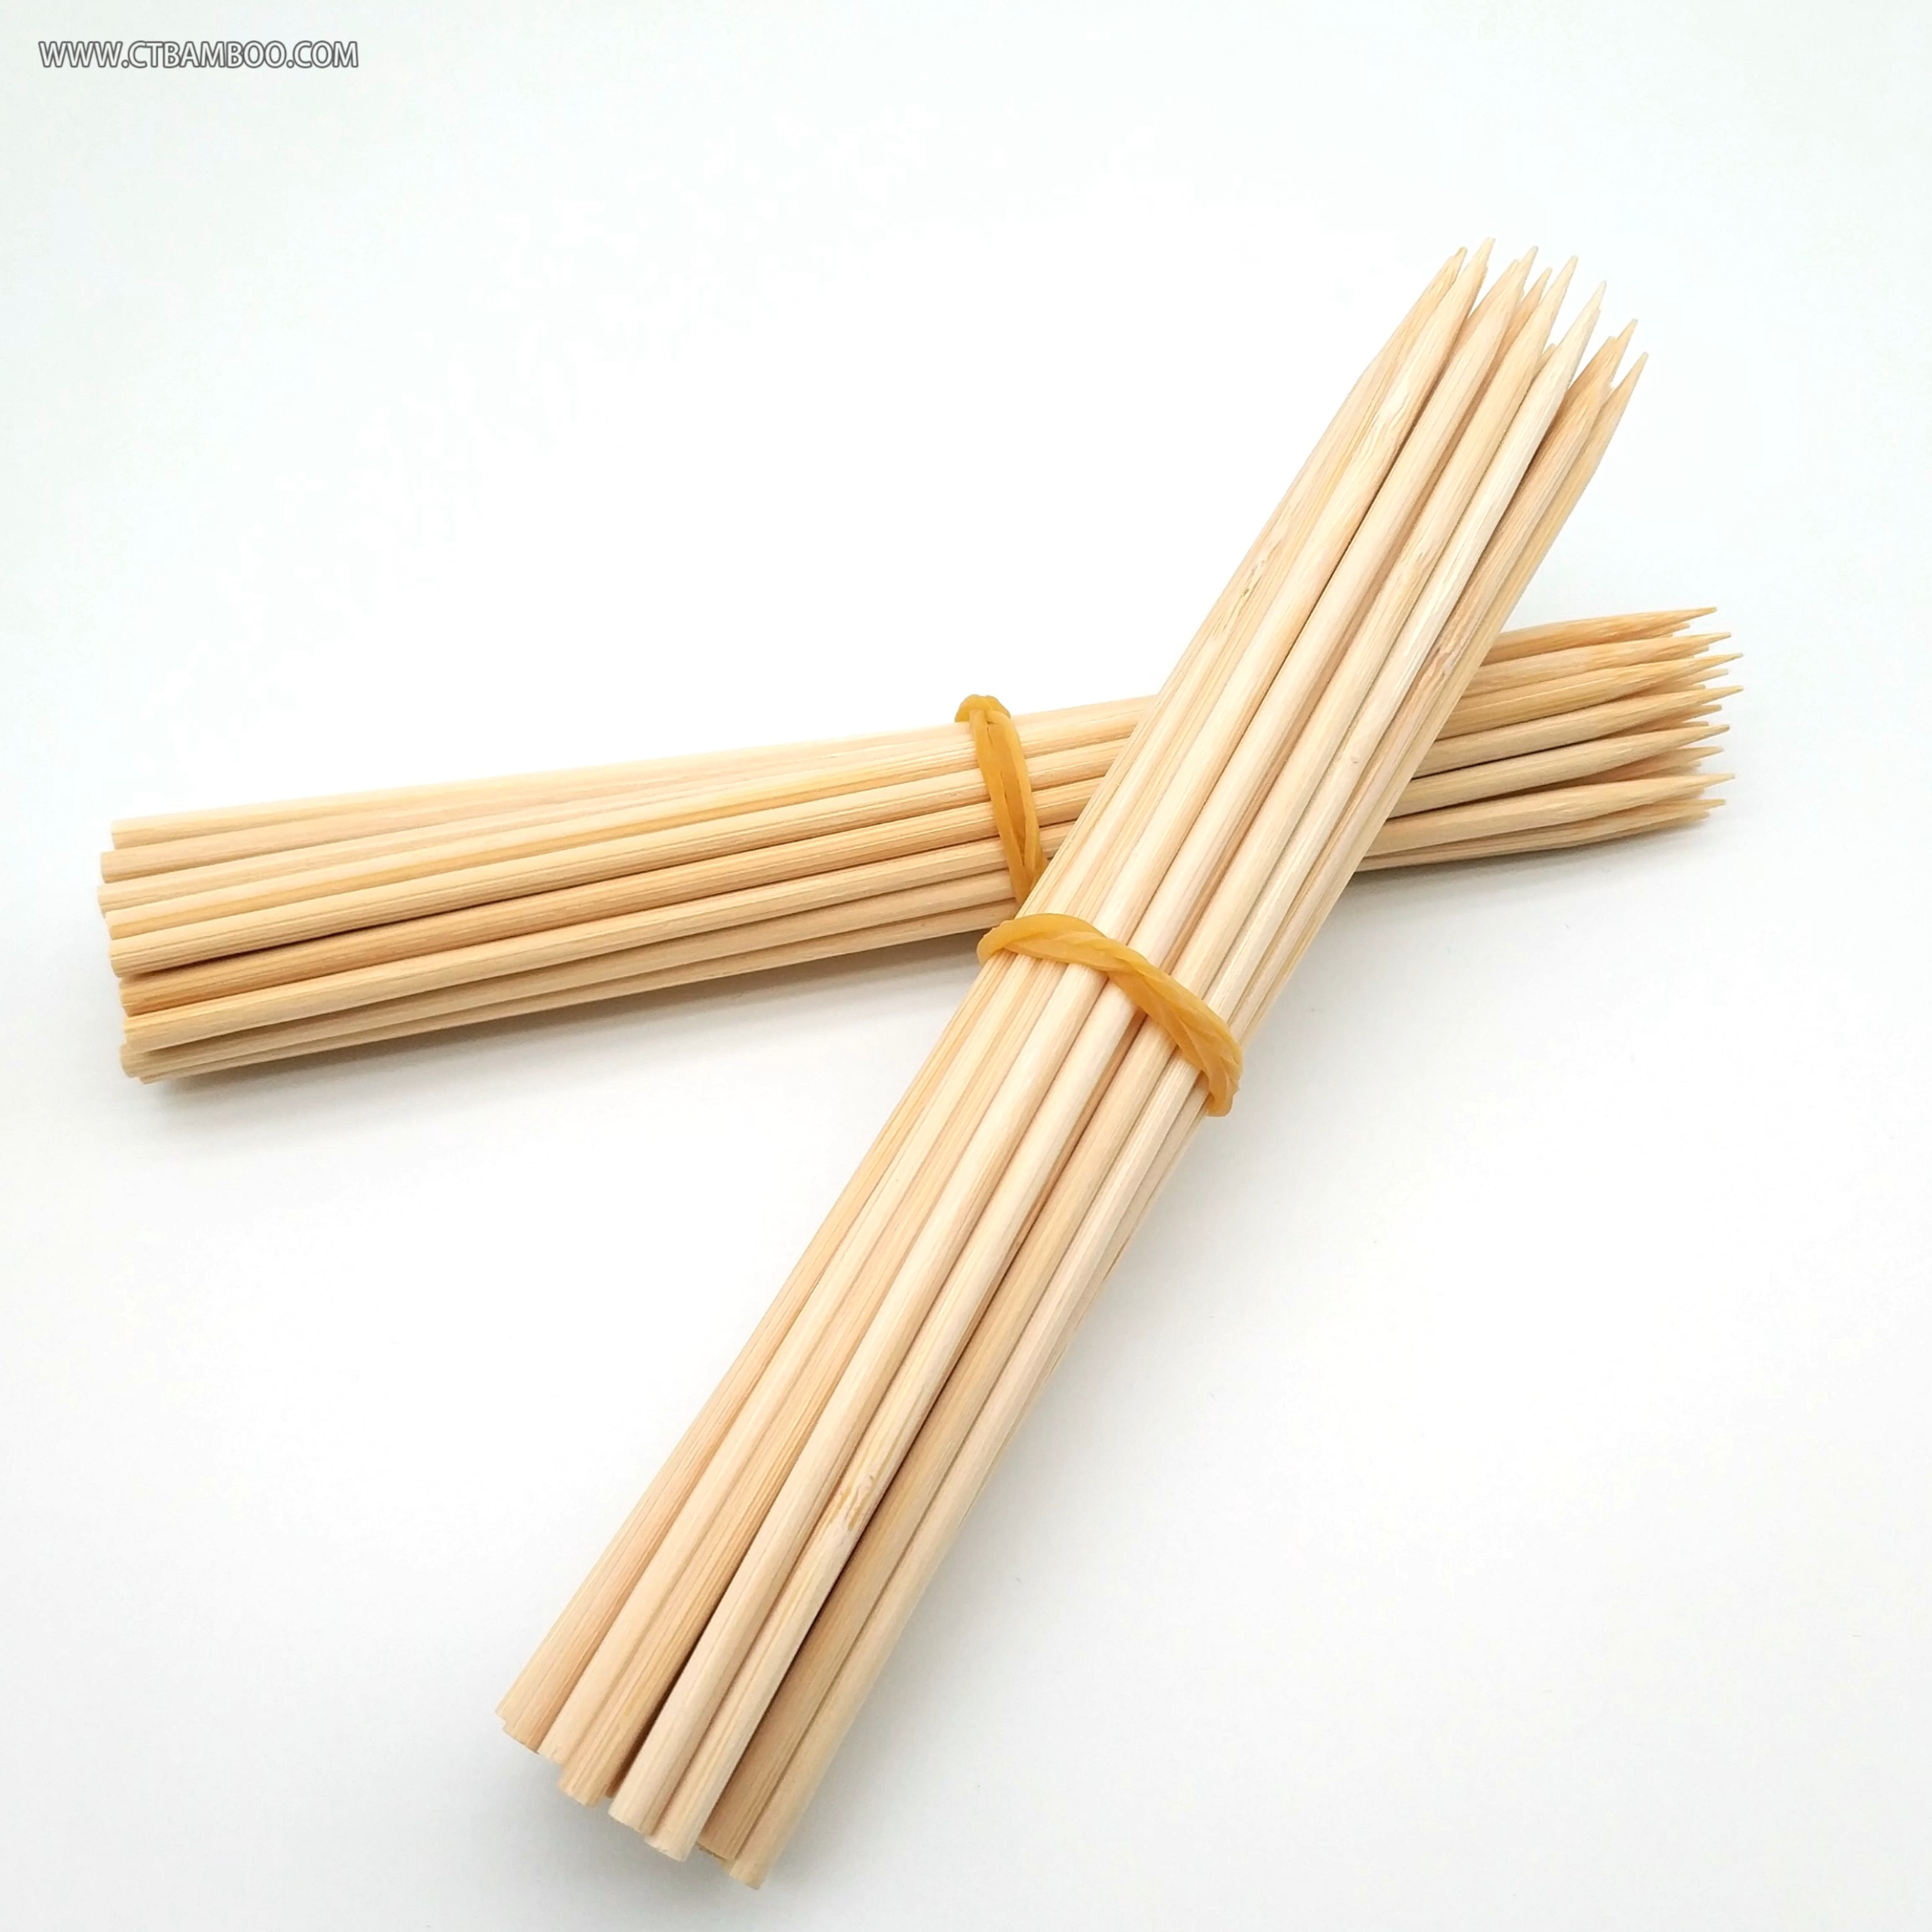 Hot selling products marshmallow roasting sticks wooden bamboo round skewer 15cm 30cm 40cm  50cm 60cm 70cm 90cm 36inch